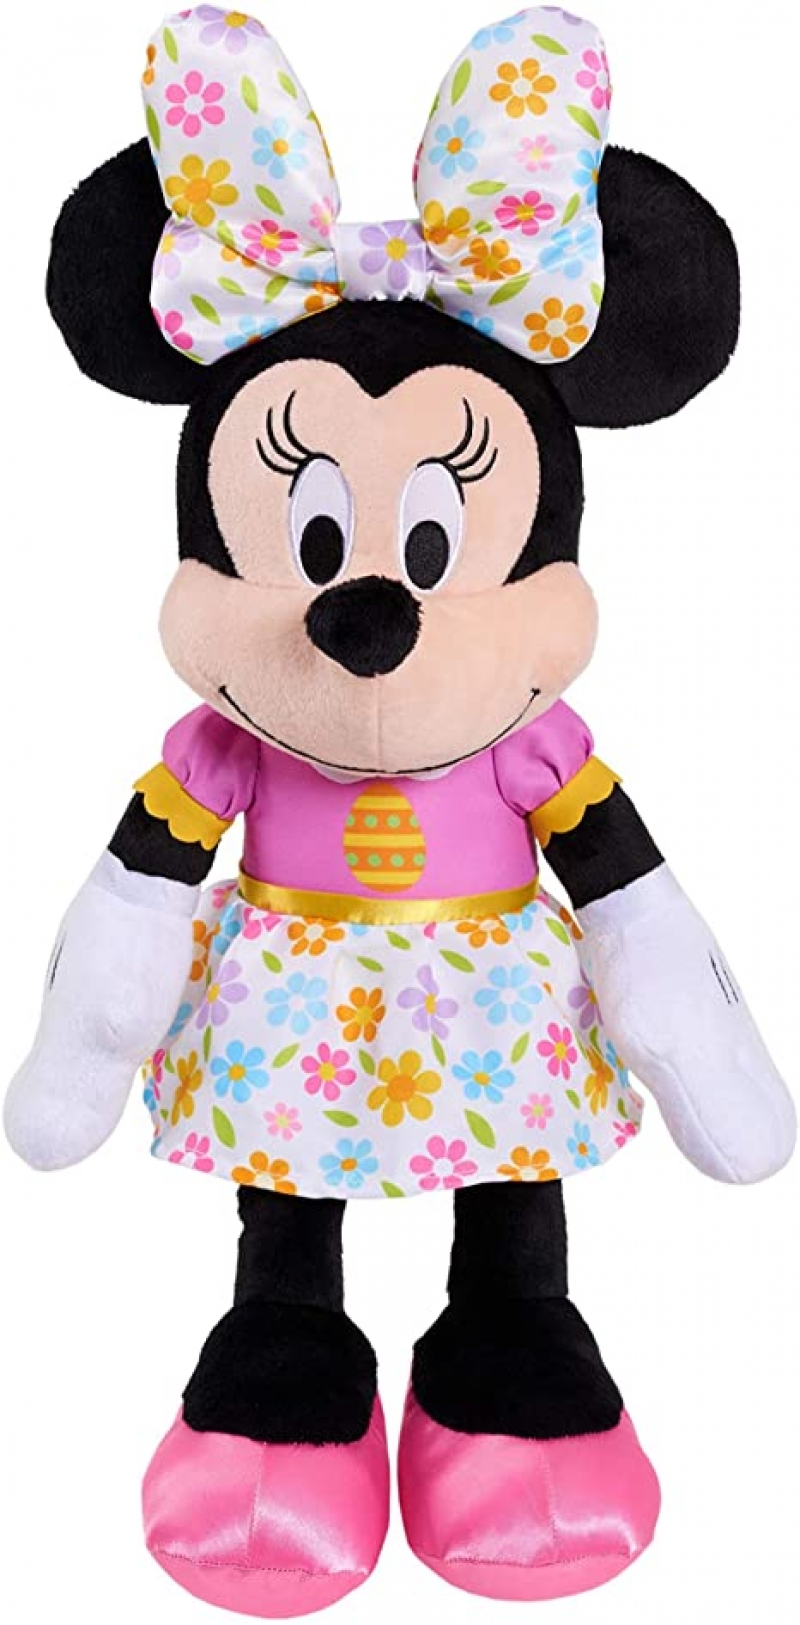 ihocon: Disney Easter Large 19 Inch Plush Minnie Mouse in Spring Themed Dress and Oversized Matching Bow, Easter Basket and Presents 迪士尼米妮復活節玩偶